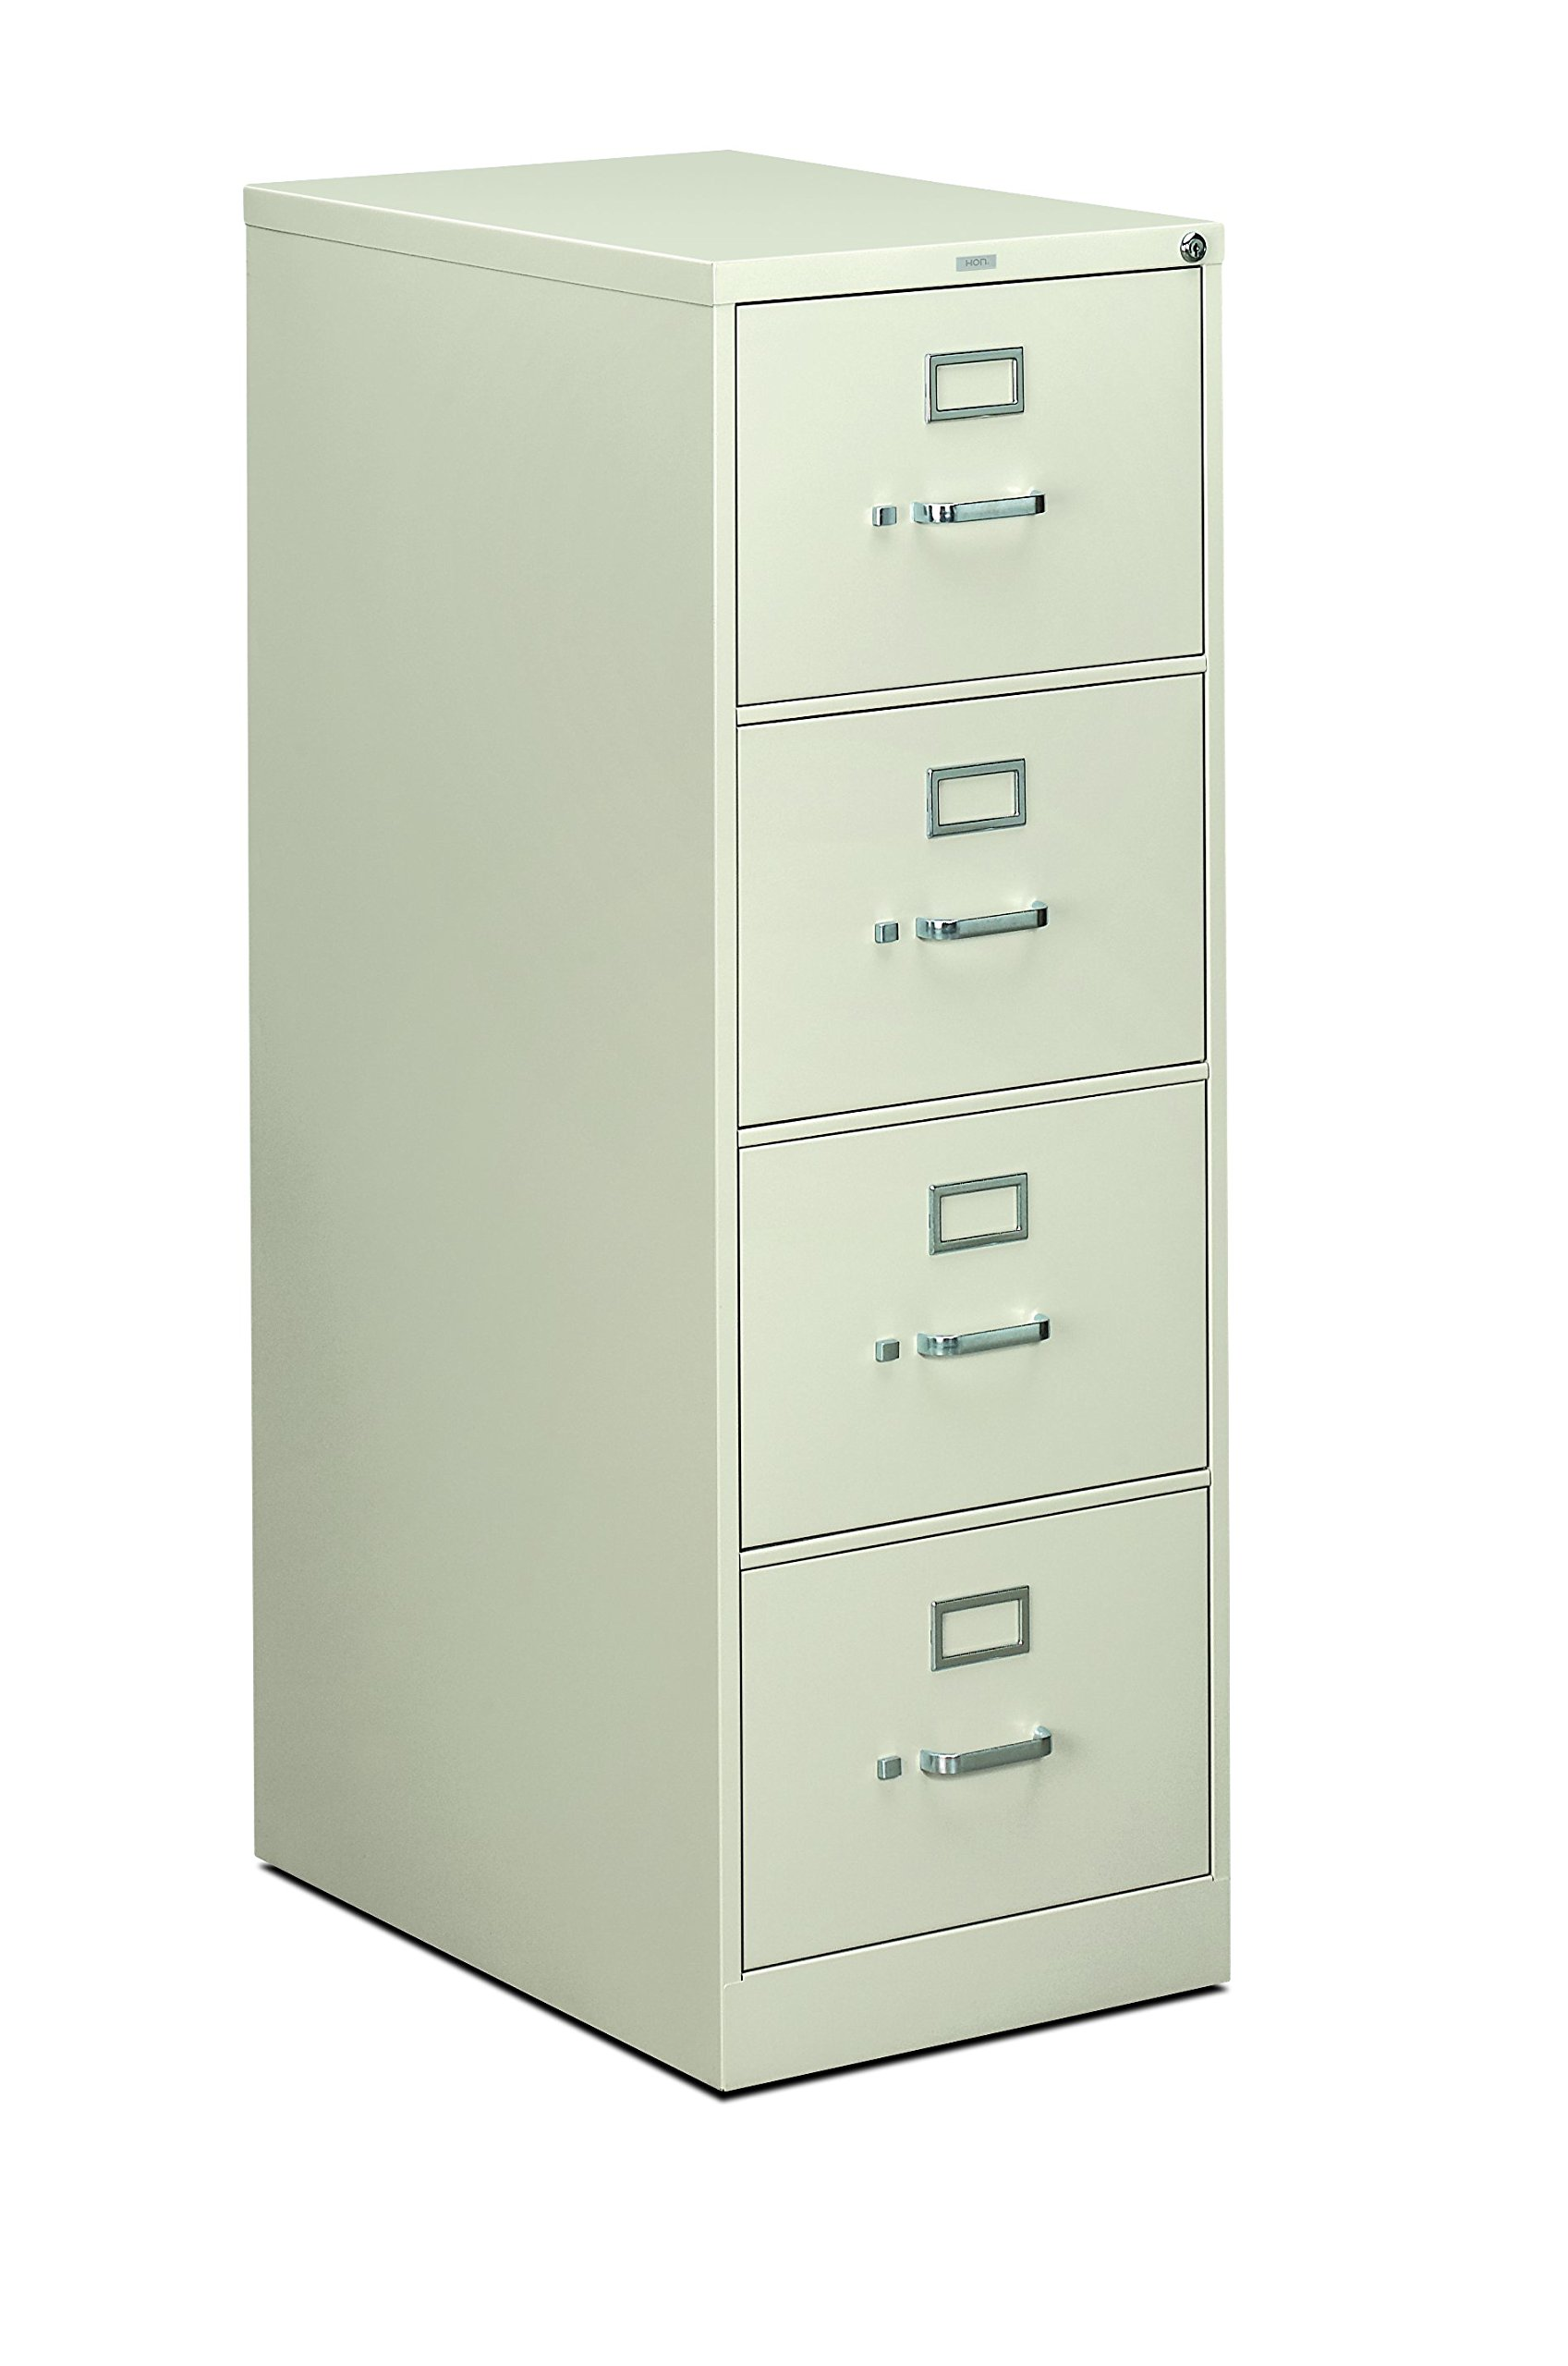 HON 4-Drawer Filing Cabinet - 310 Series Full-Suspension Legal File Cabinet, 26-1/2-Inch Drawers, Light Gray (H314) by HON